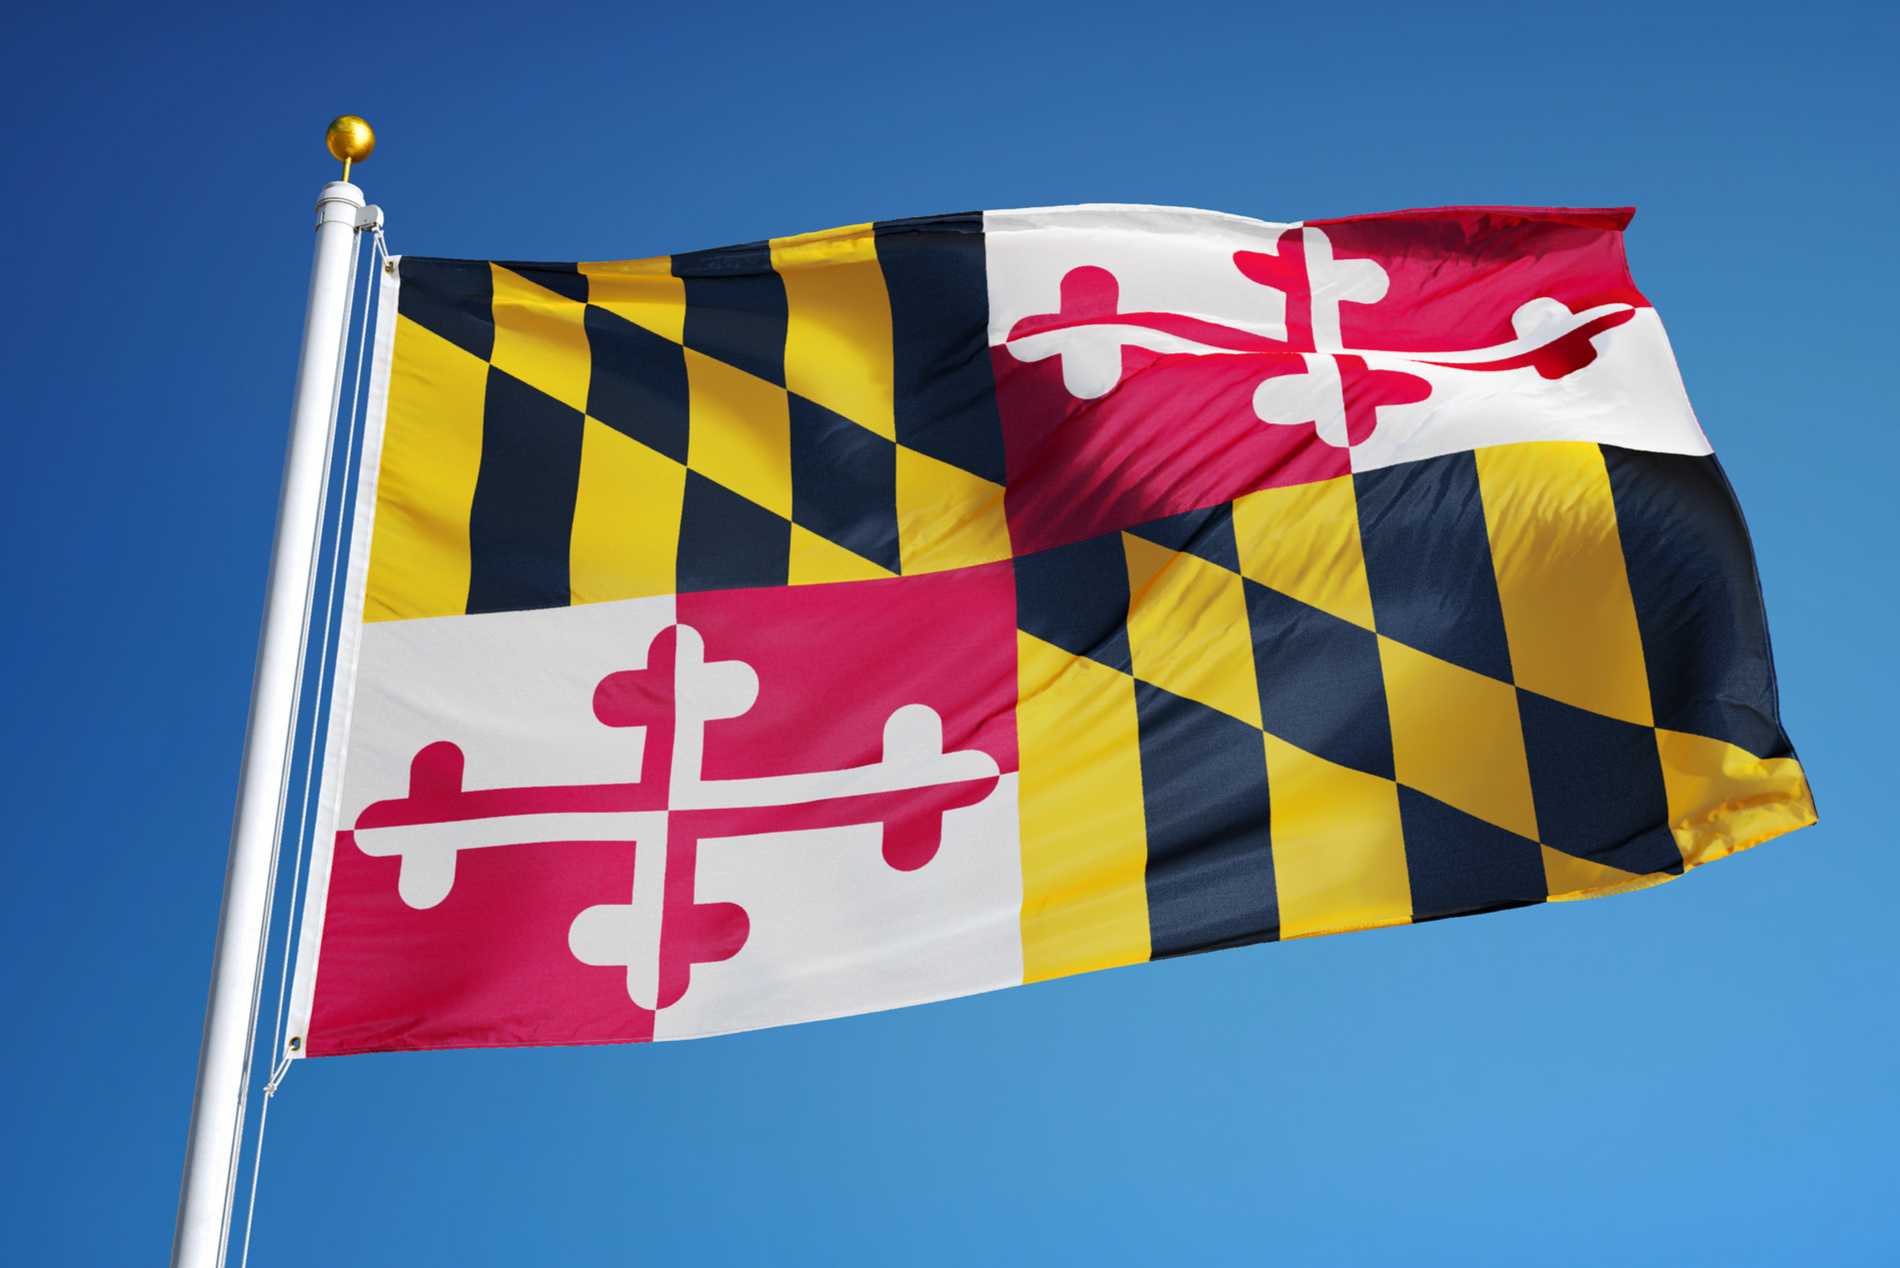 Maryland Targets Trading Platform Fraud as It Joins 'Cryptosweep' Effort